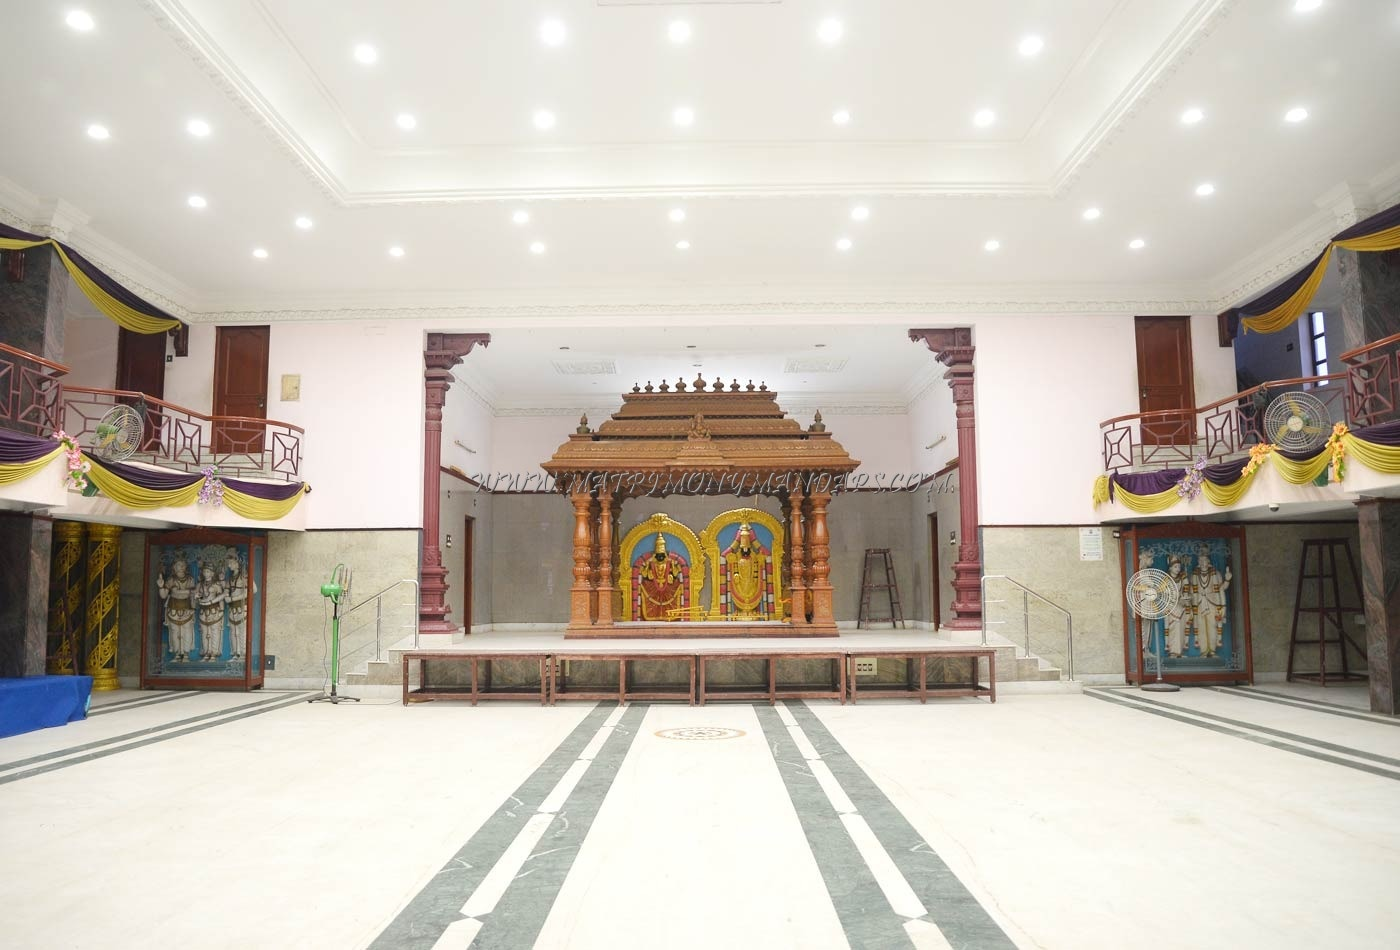 Find the availability of the Murali Krishna Thirumana Mandapam (A/C) in Arumbakkam, Chennai and avail special offers